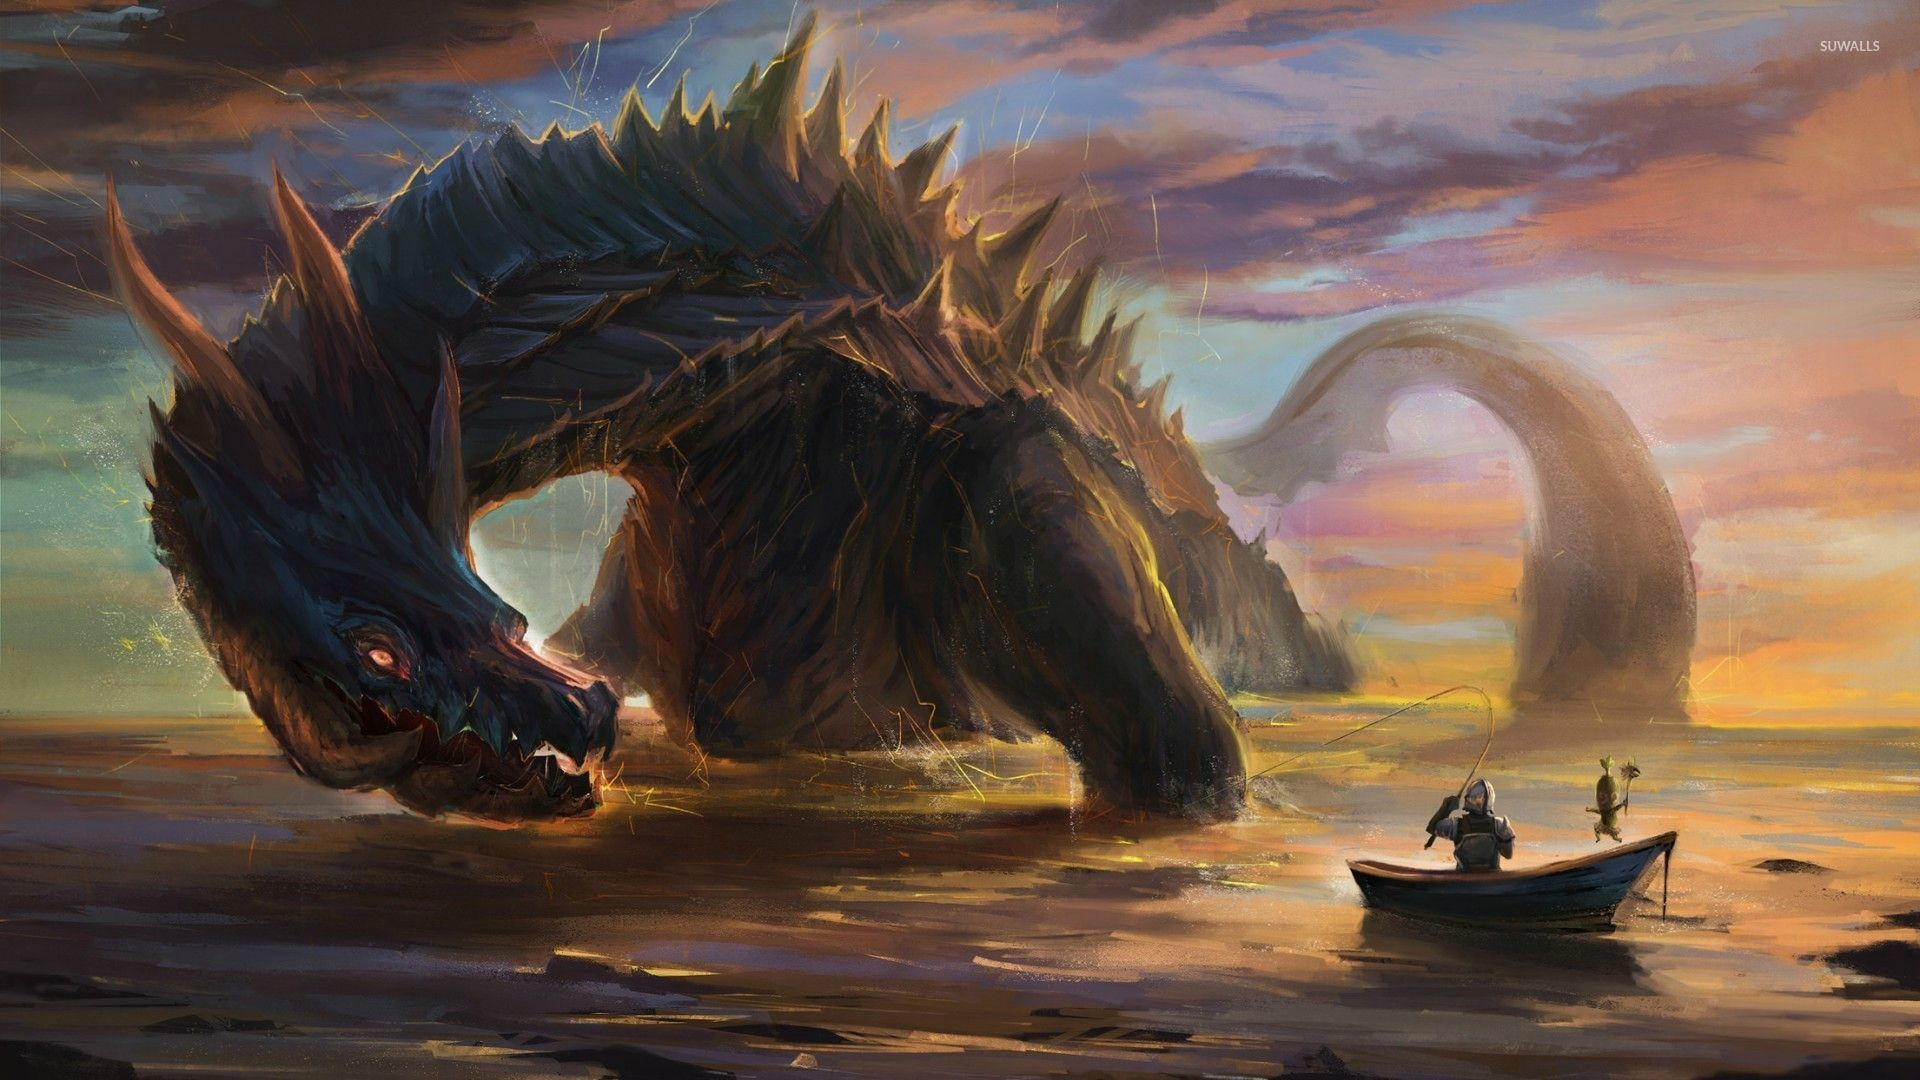 Warrior in a small boat fishing the giant dragon wallpaper jpg